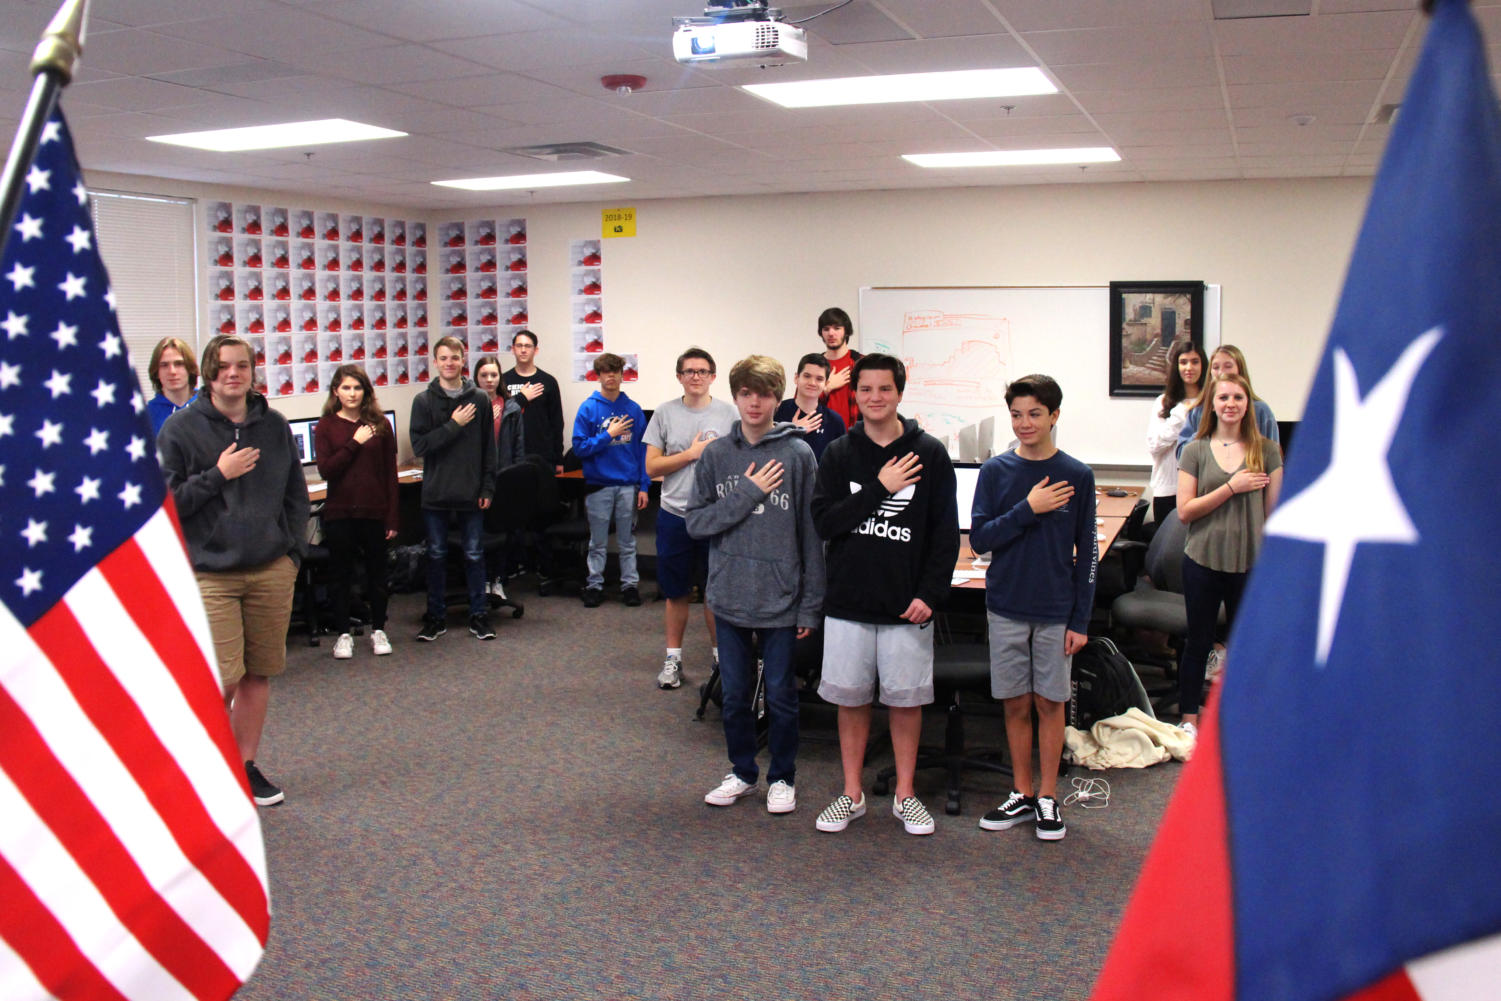 An announcement commences daily during 3rd period to guide students and faculty in reciting the pledges and participating in a moment of silence.